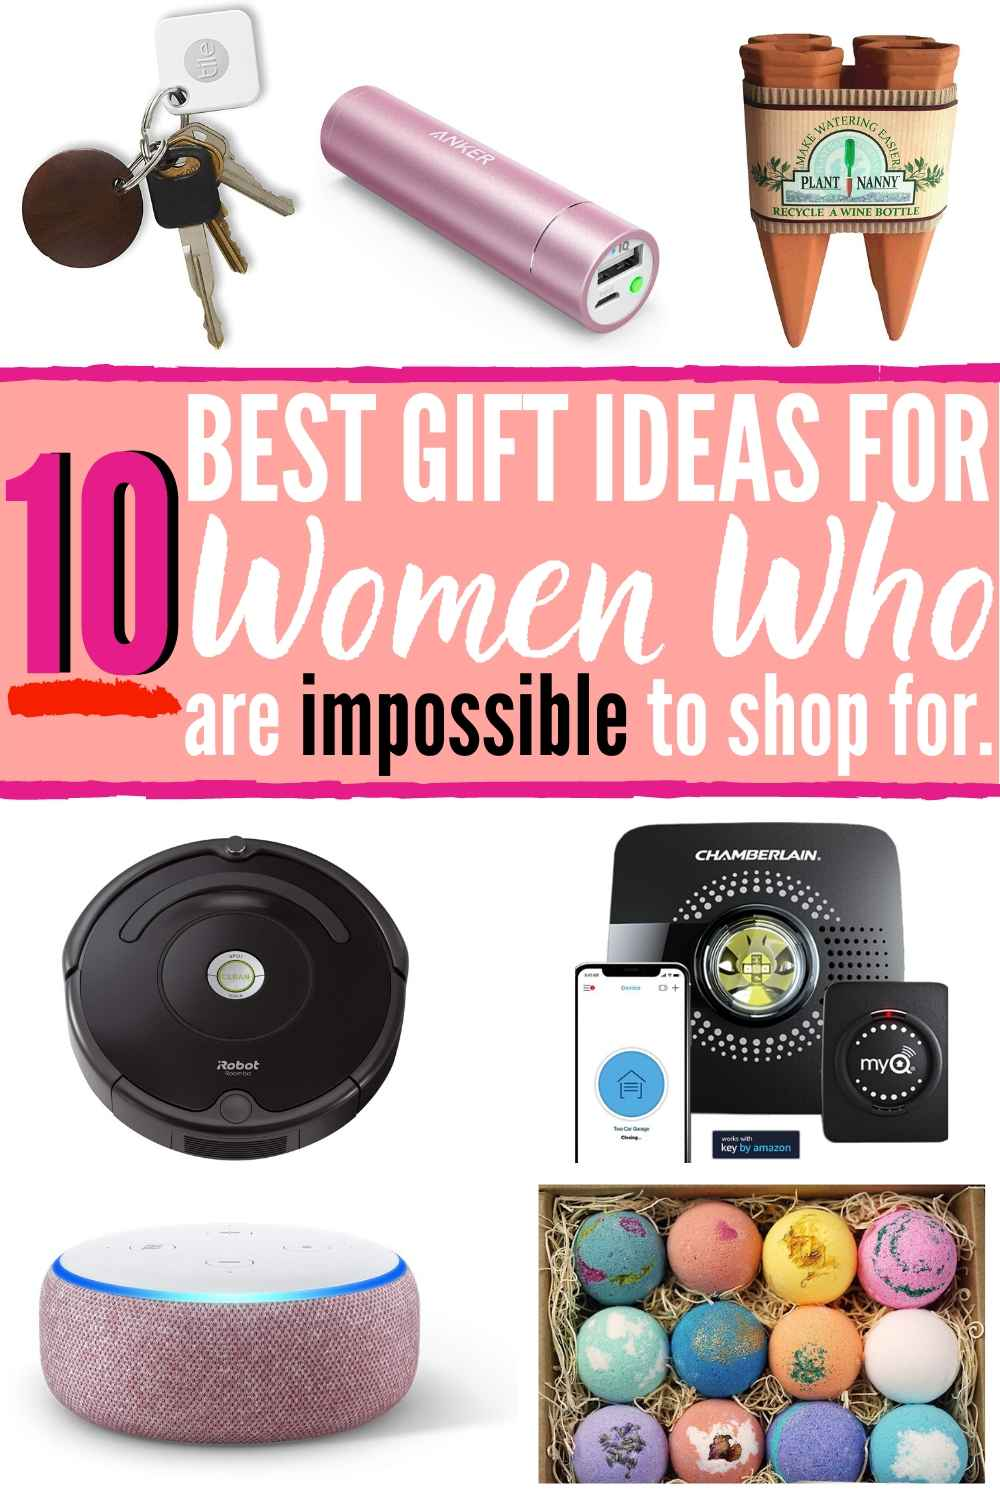 10 BEST Gift Ideas For Women Who Are Impossible To Shop For